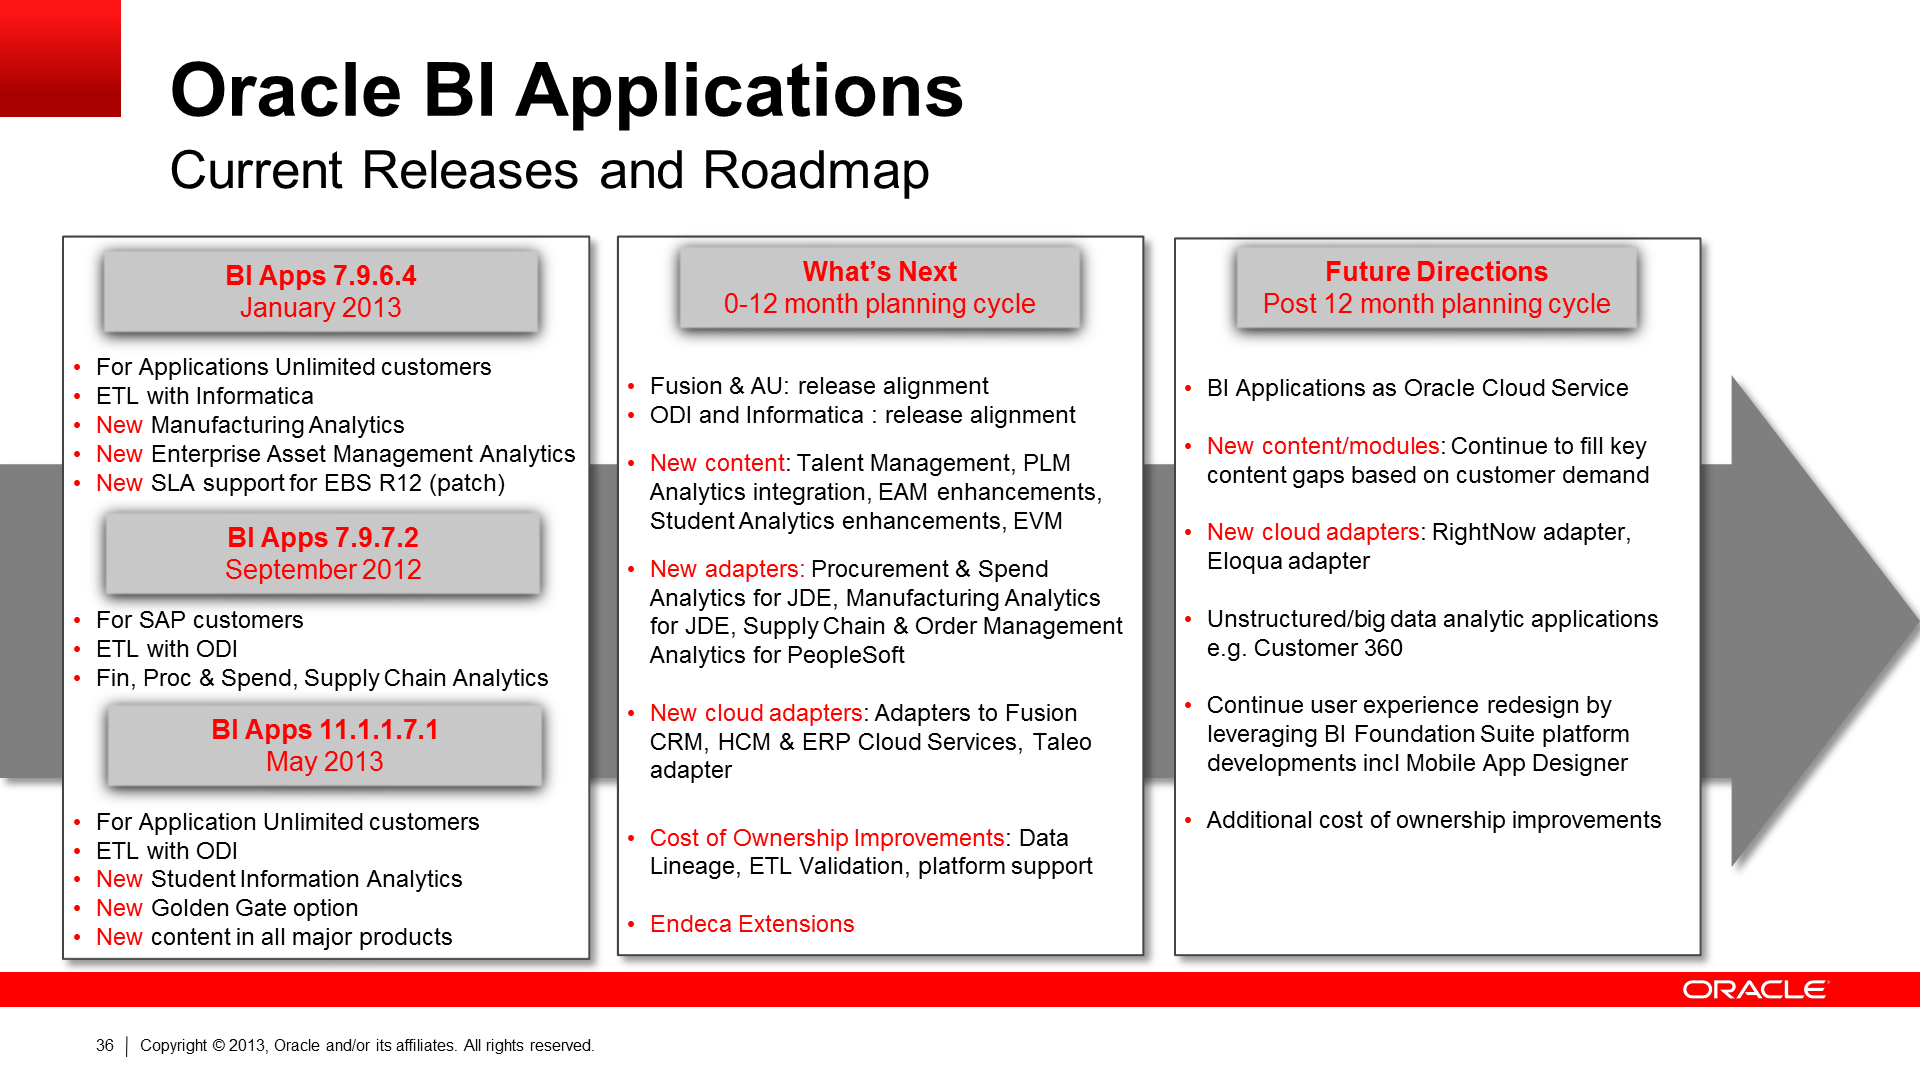 Oracle Business Intelligence Applications - Current Release and Roadmap